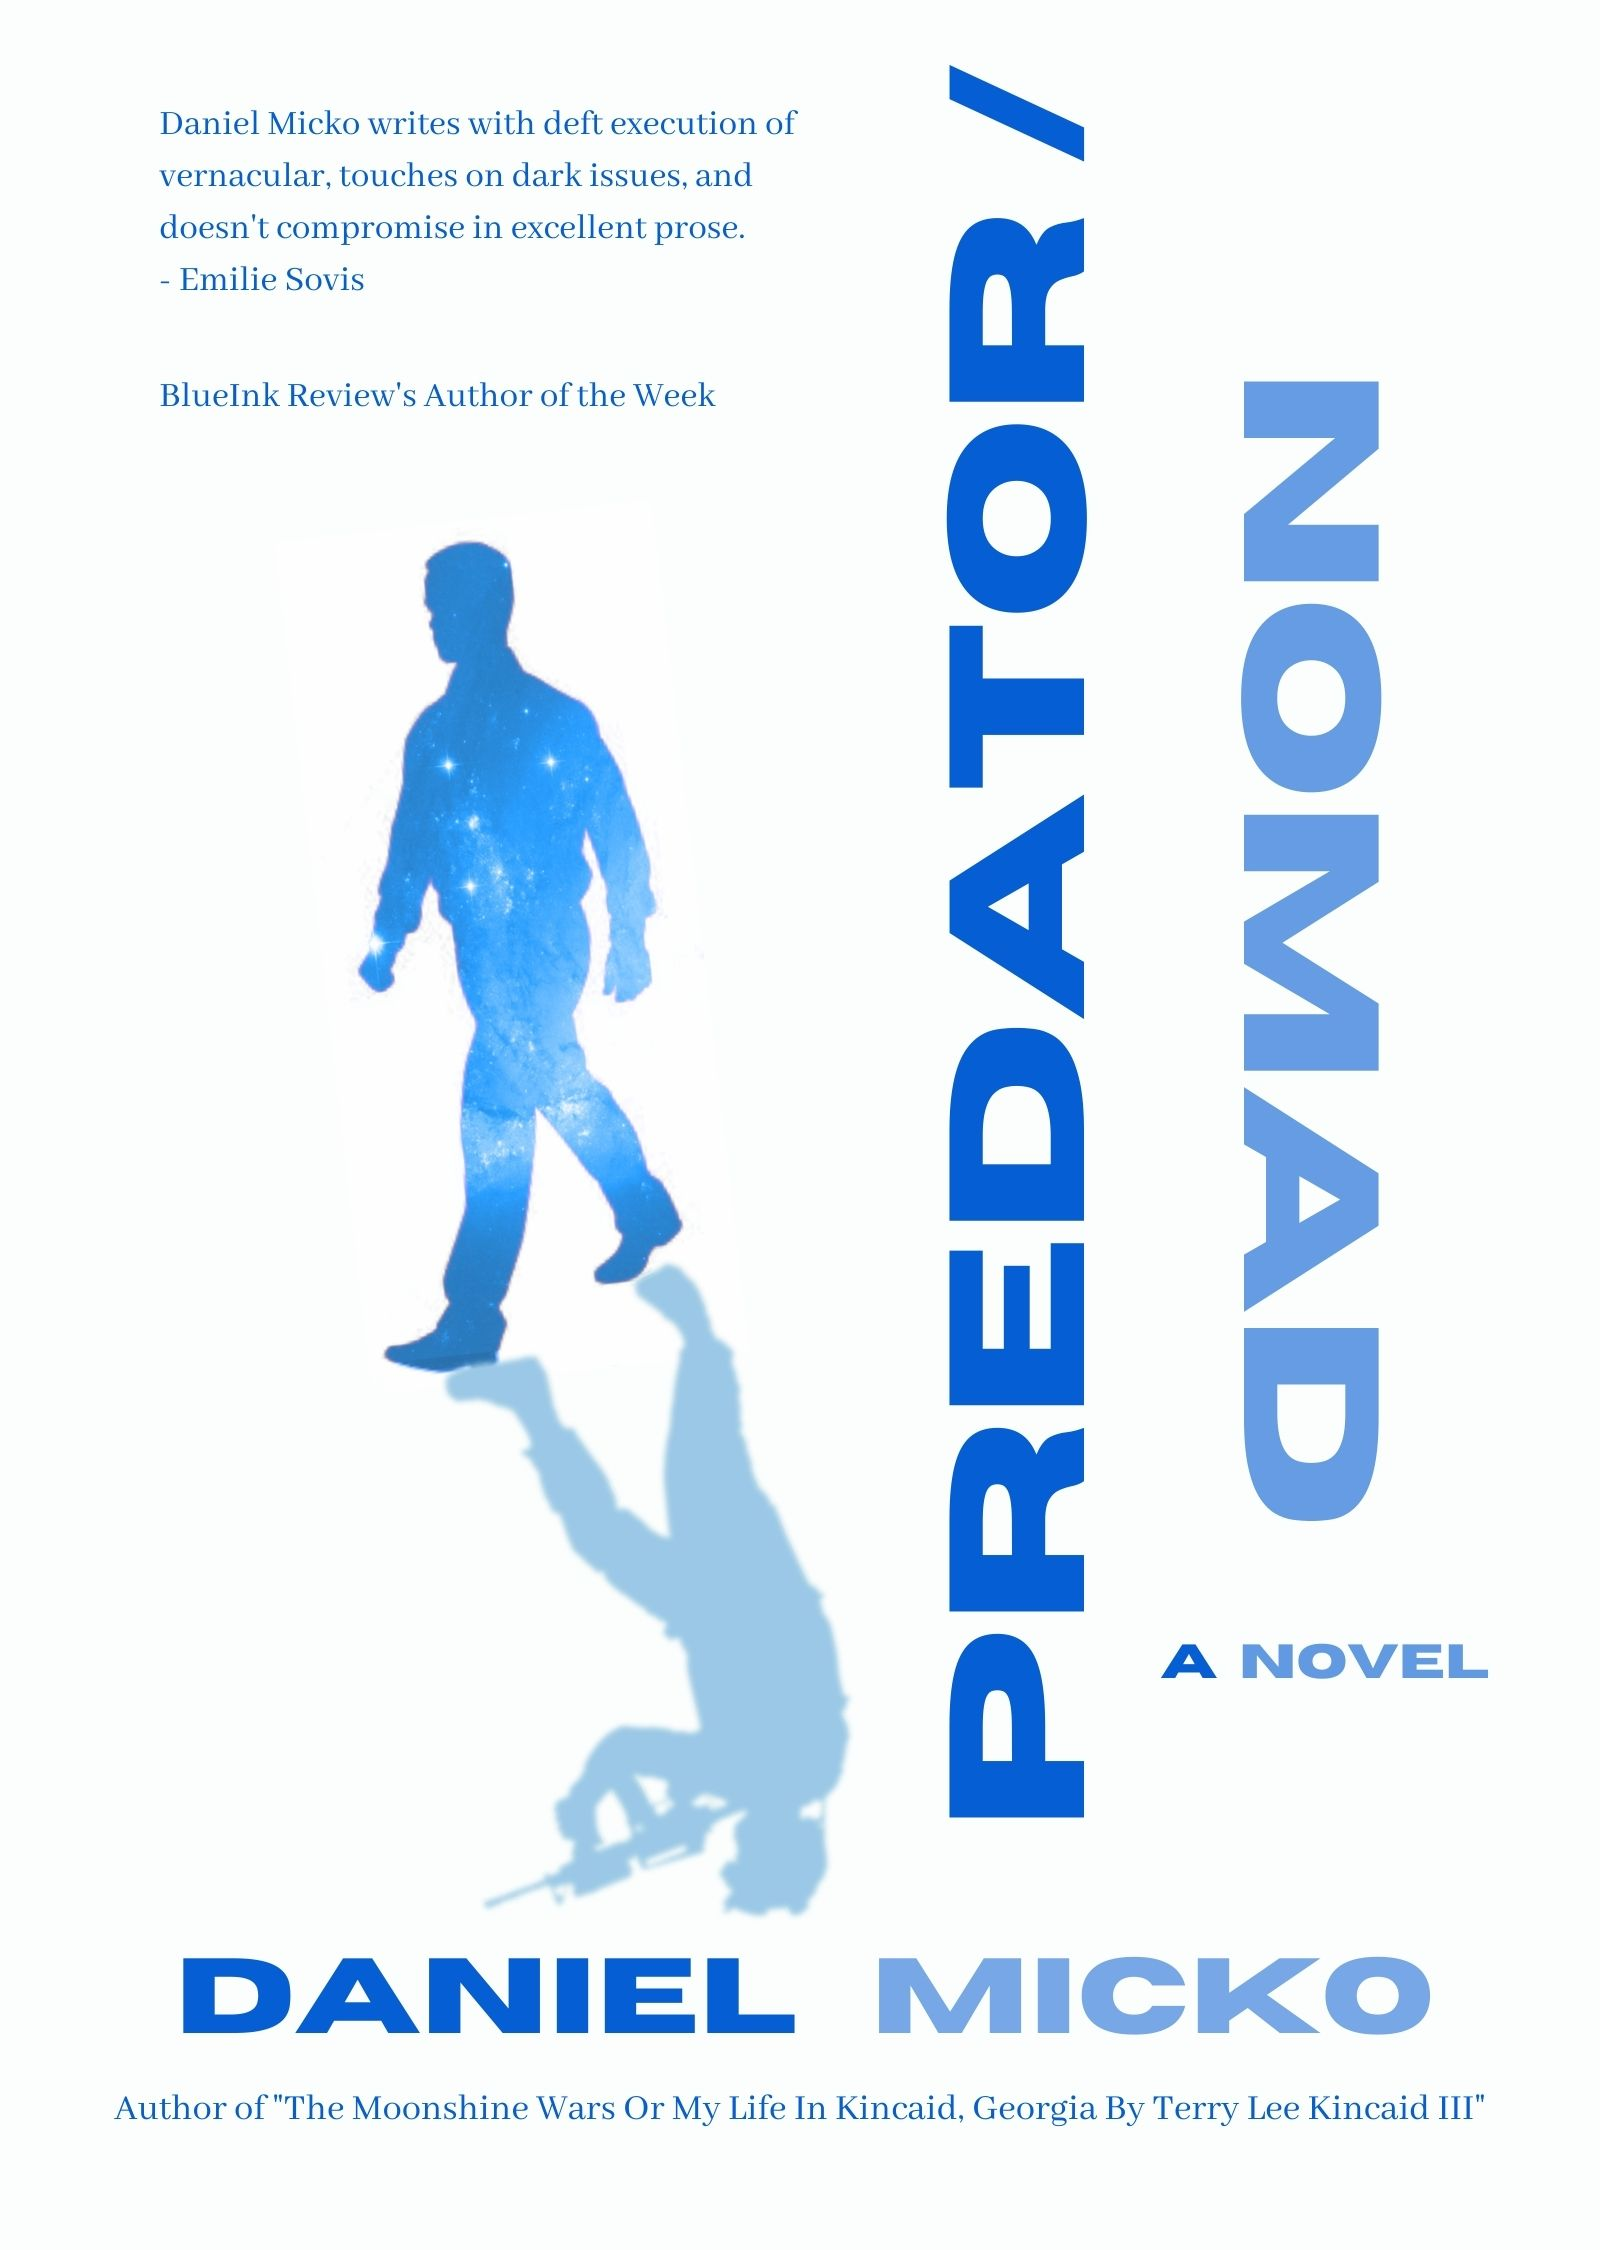 Book Talks with Author Daniel Micko | New Book Release Predator Nomad